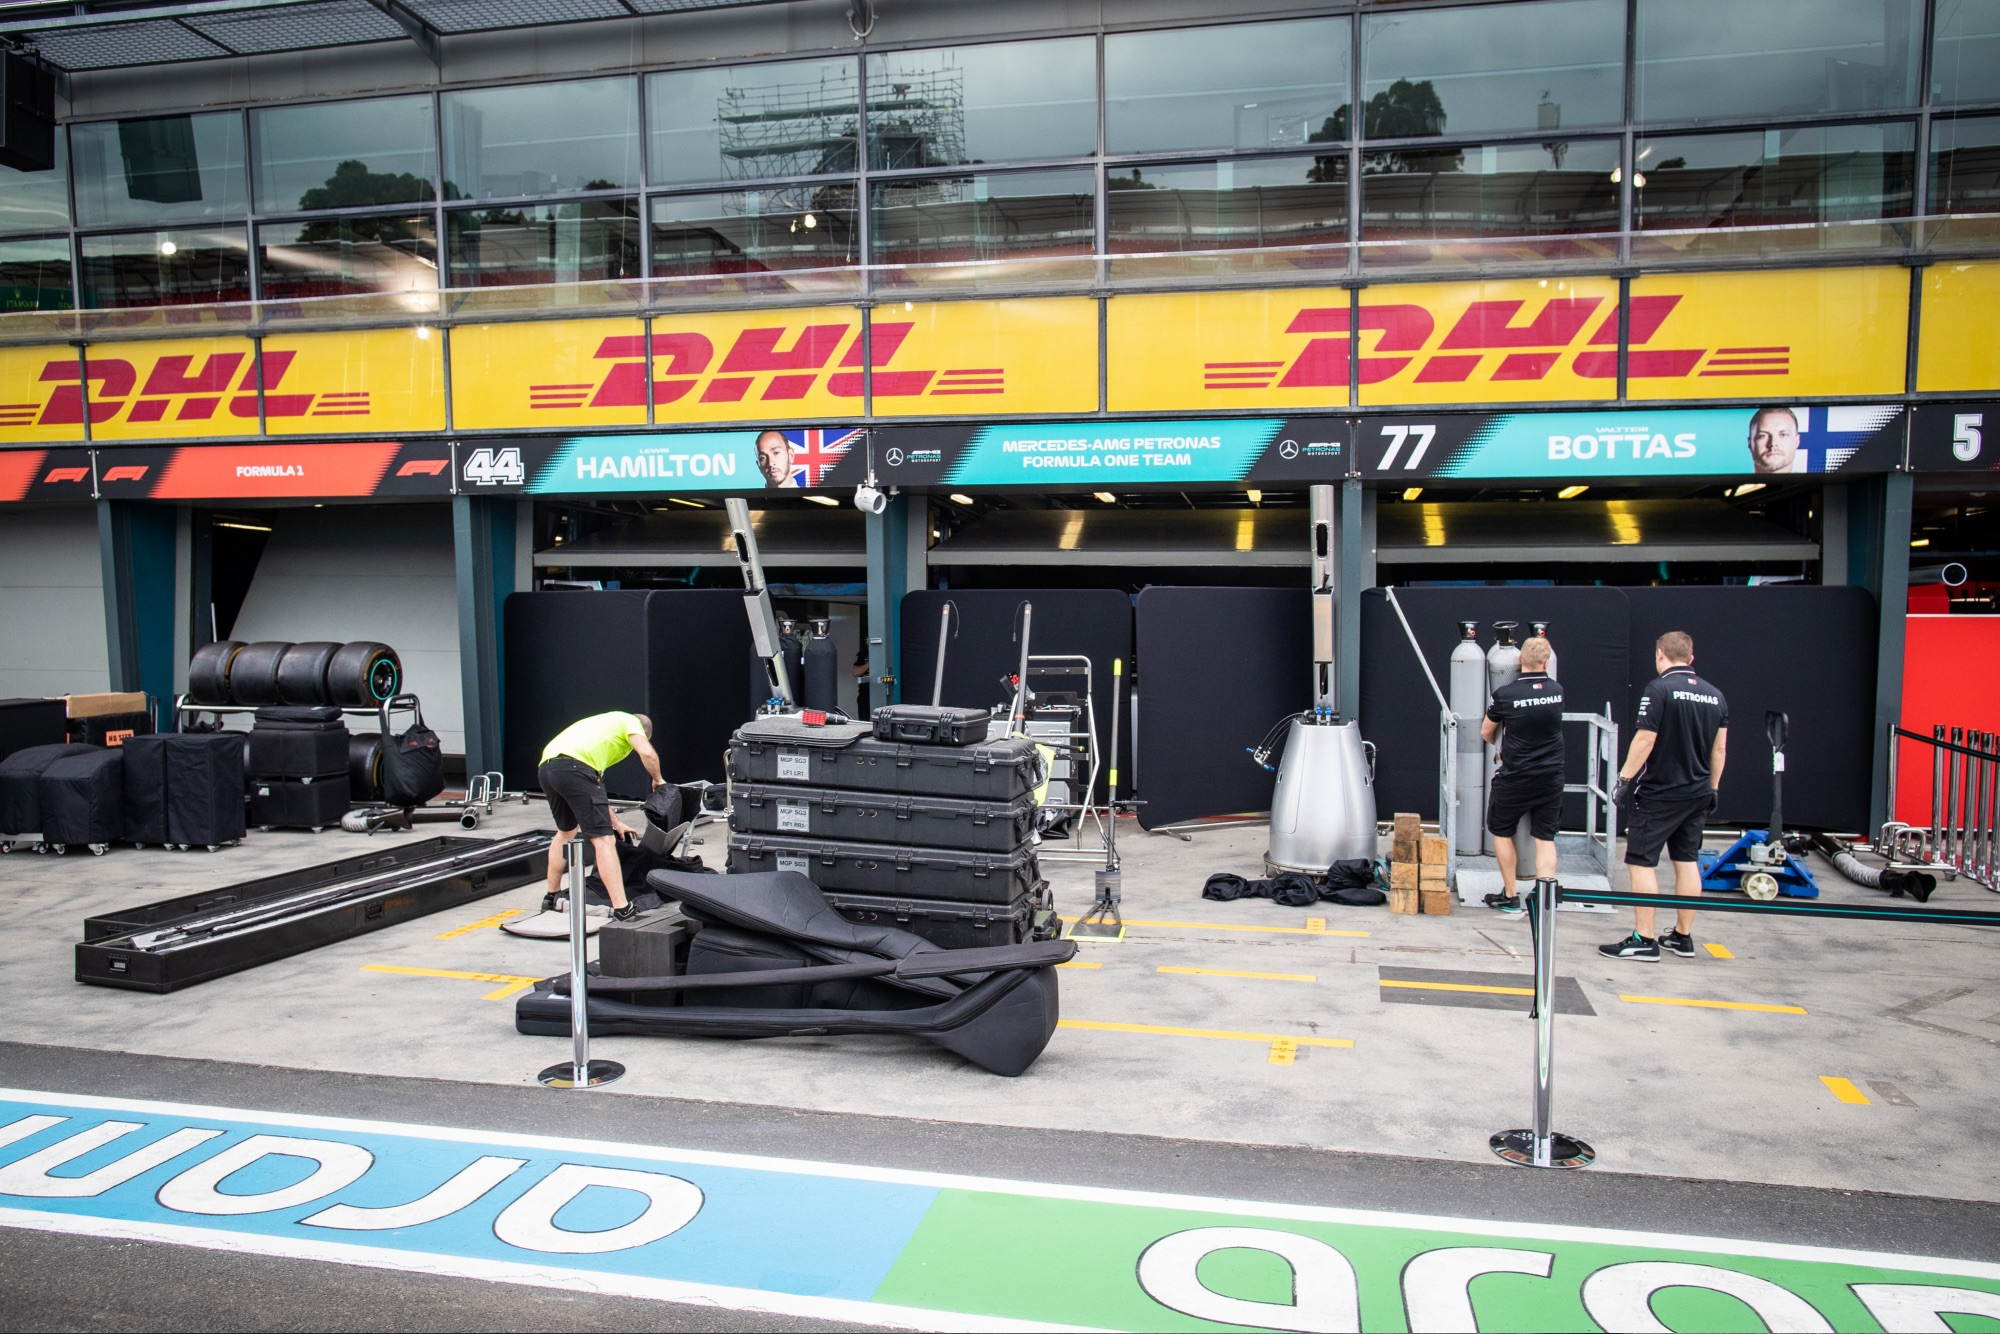 Mercedes F1 team garages